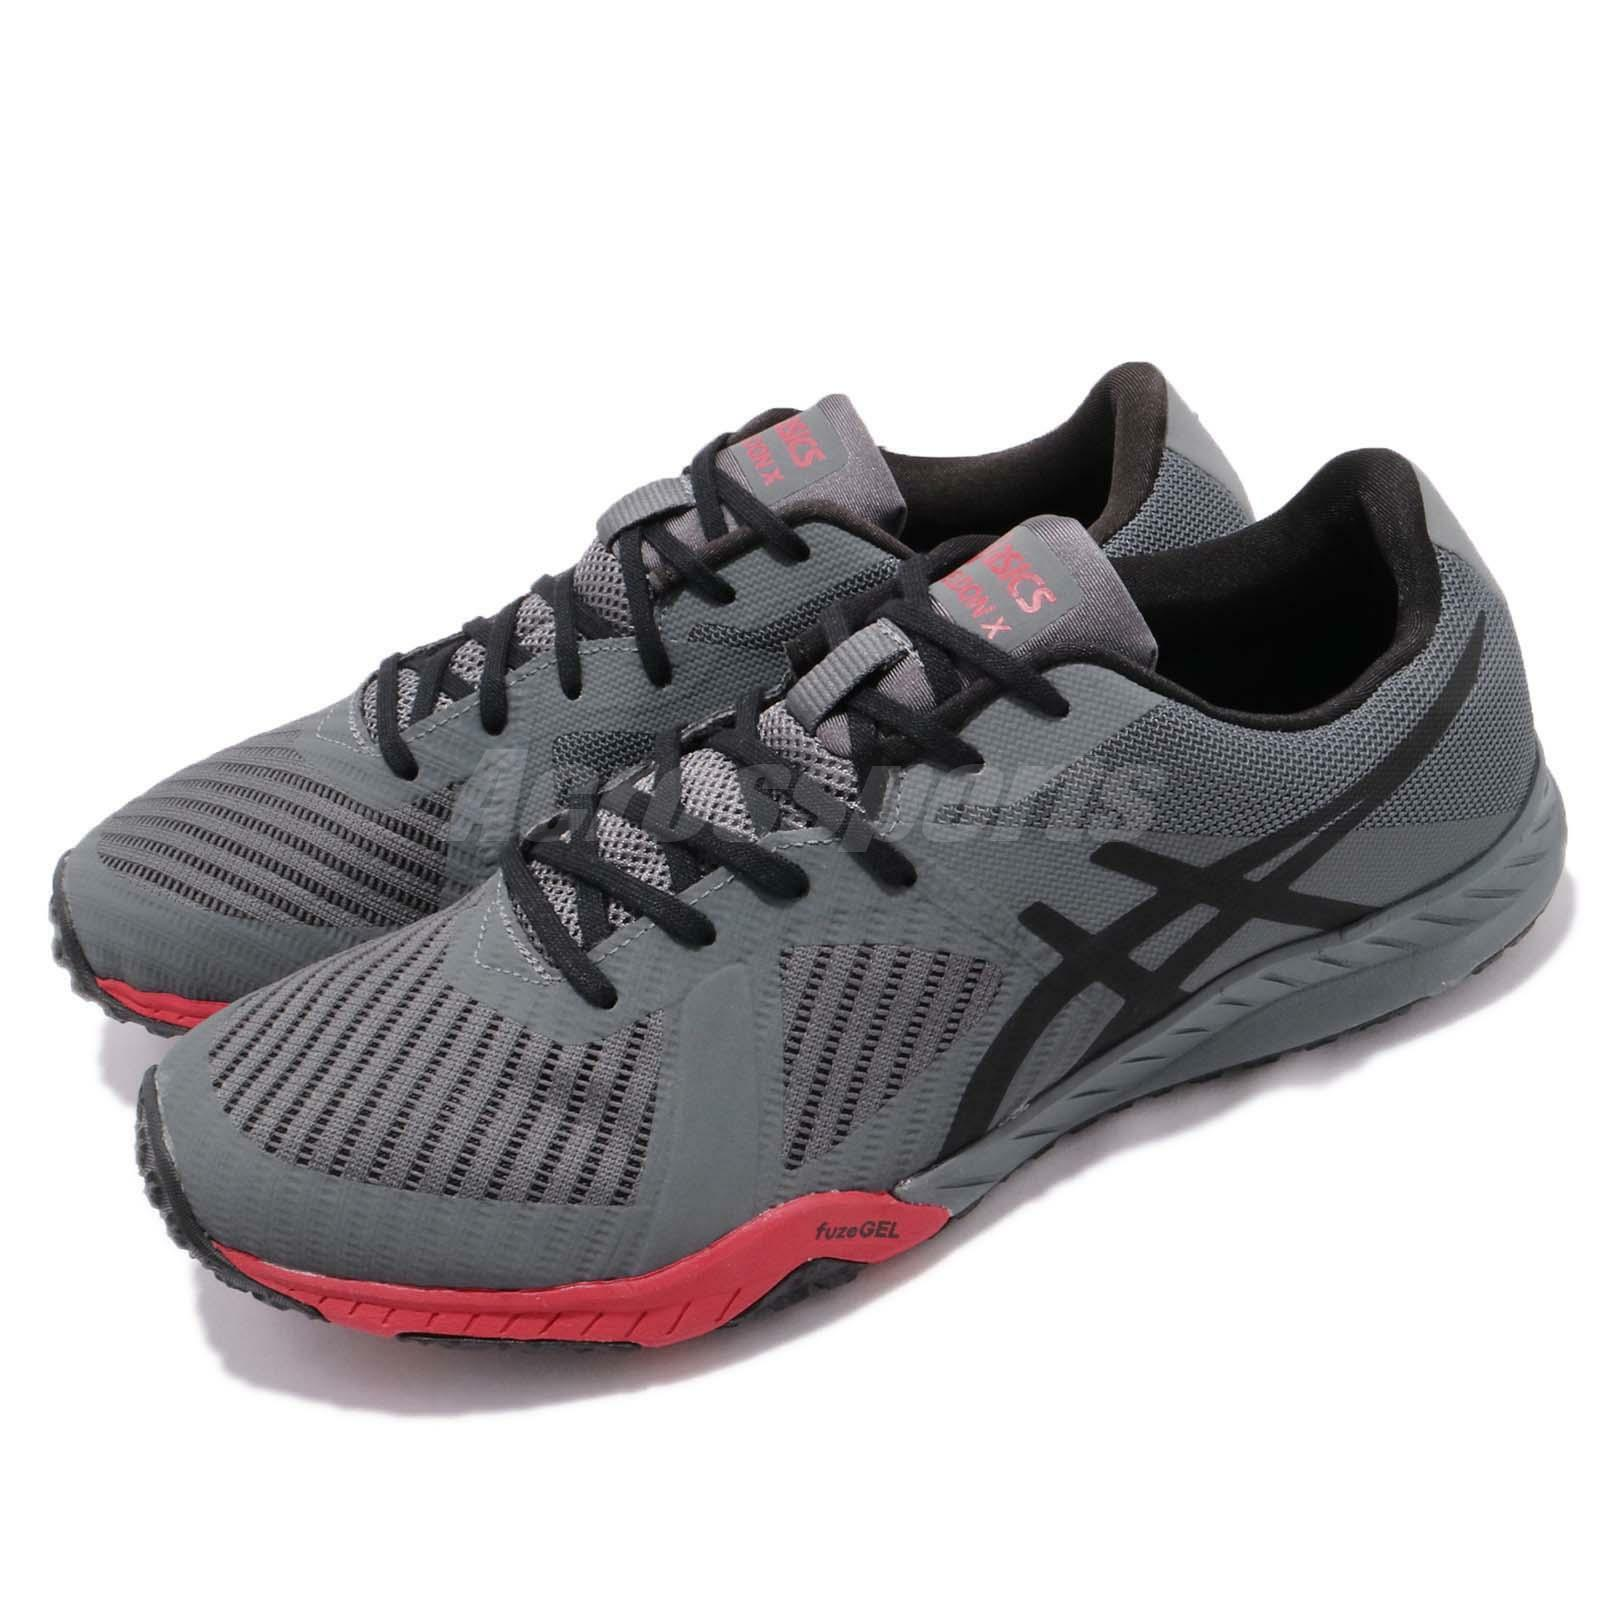 Asics Weldon X Carbon Grey Black Red Mens Training shoes shoes shoes Trainers S707N-9790 b09603